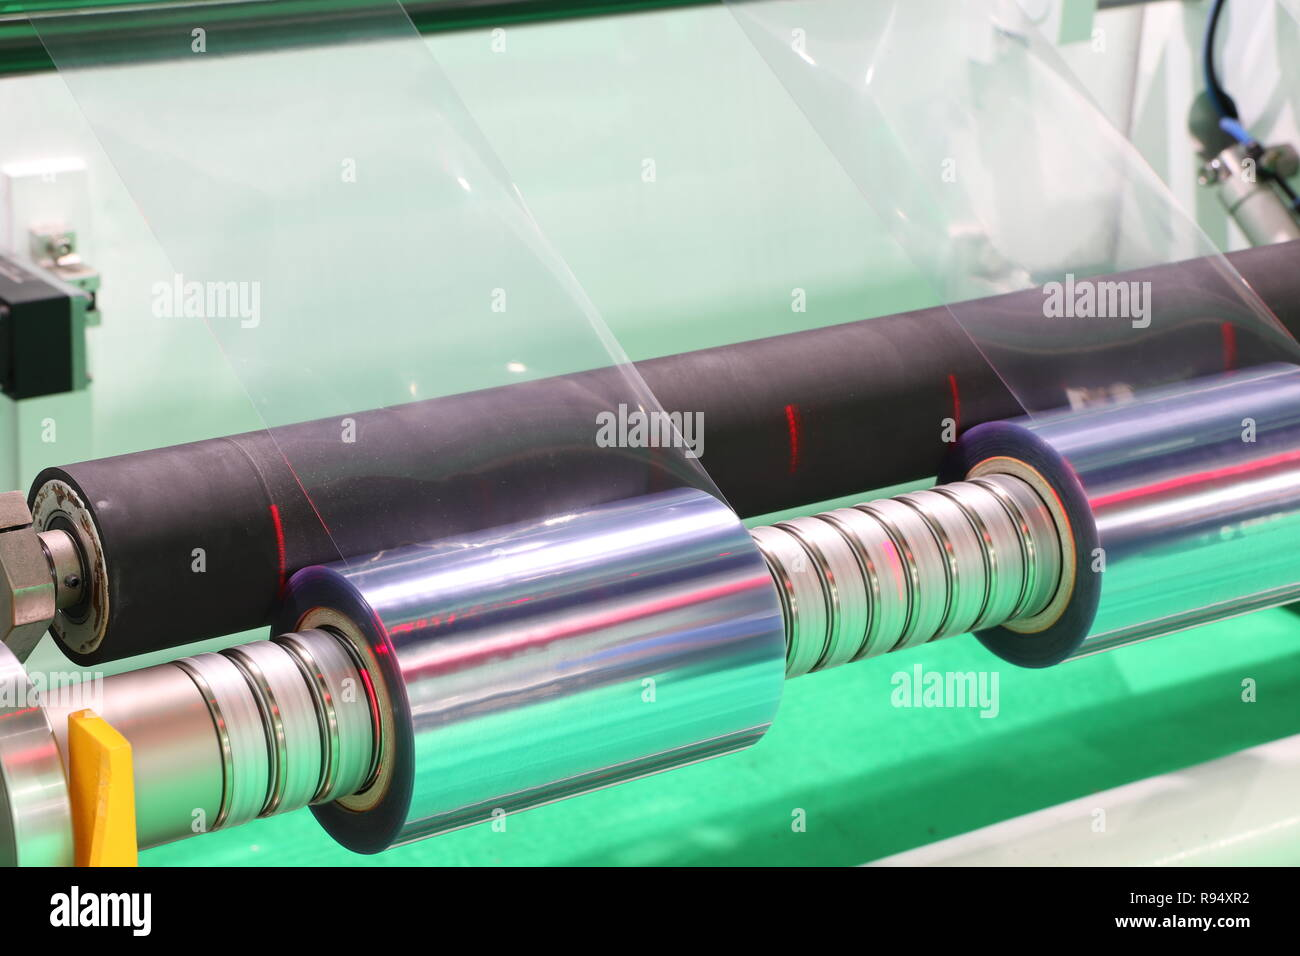 Film Roll slitting machine ; a shearing operation that cuts a large roll of material into narrower rolls - Stock Image